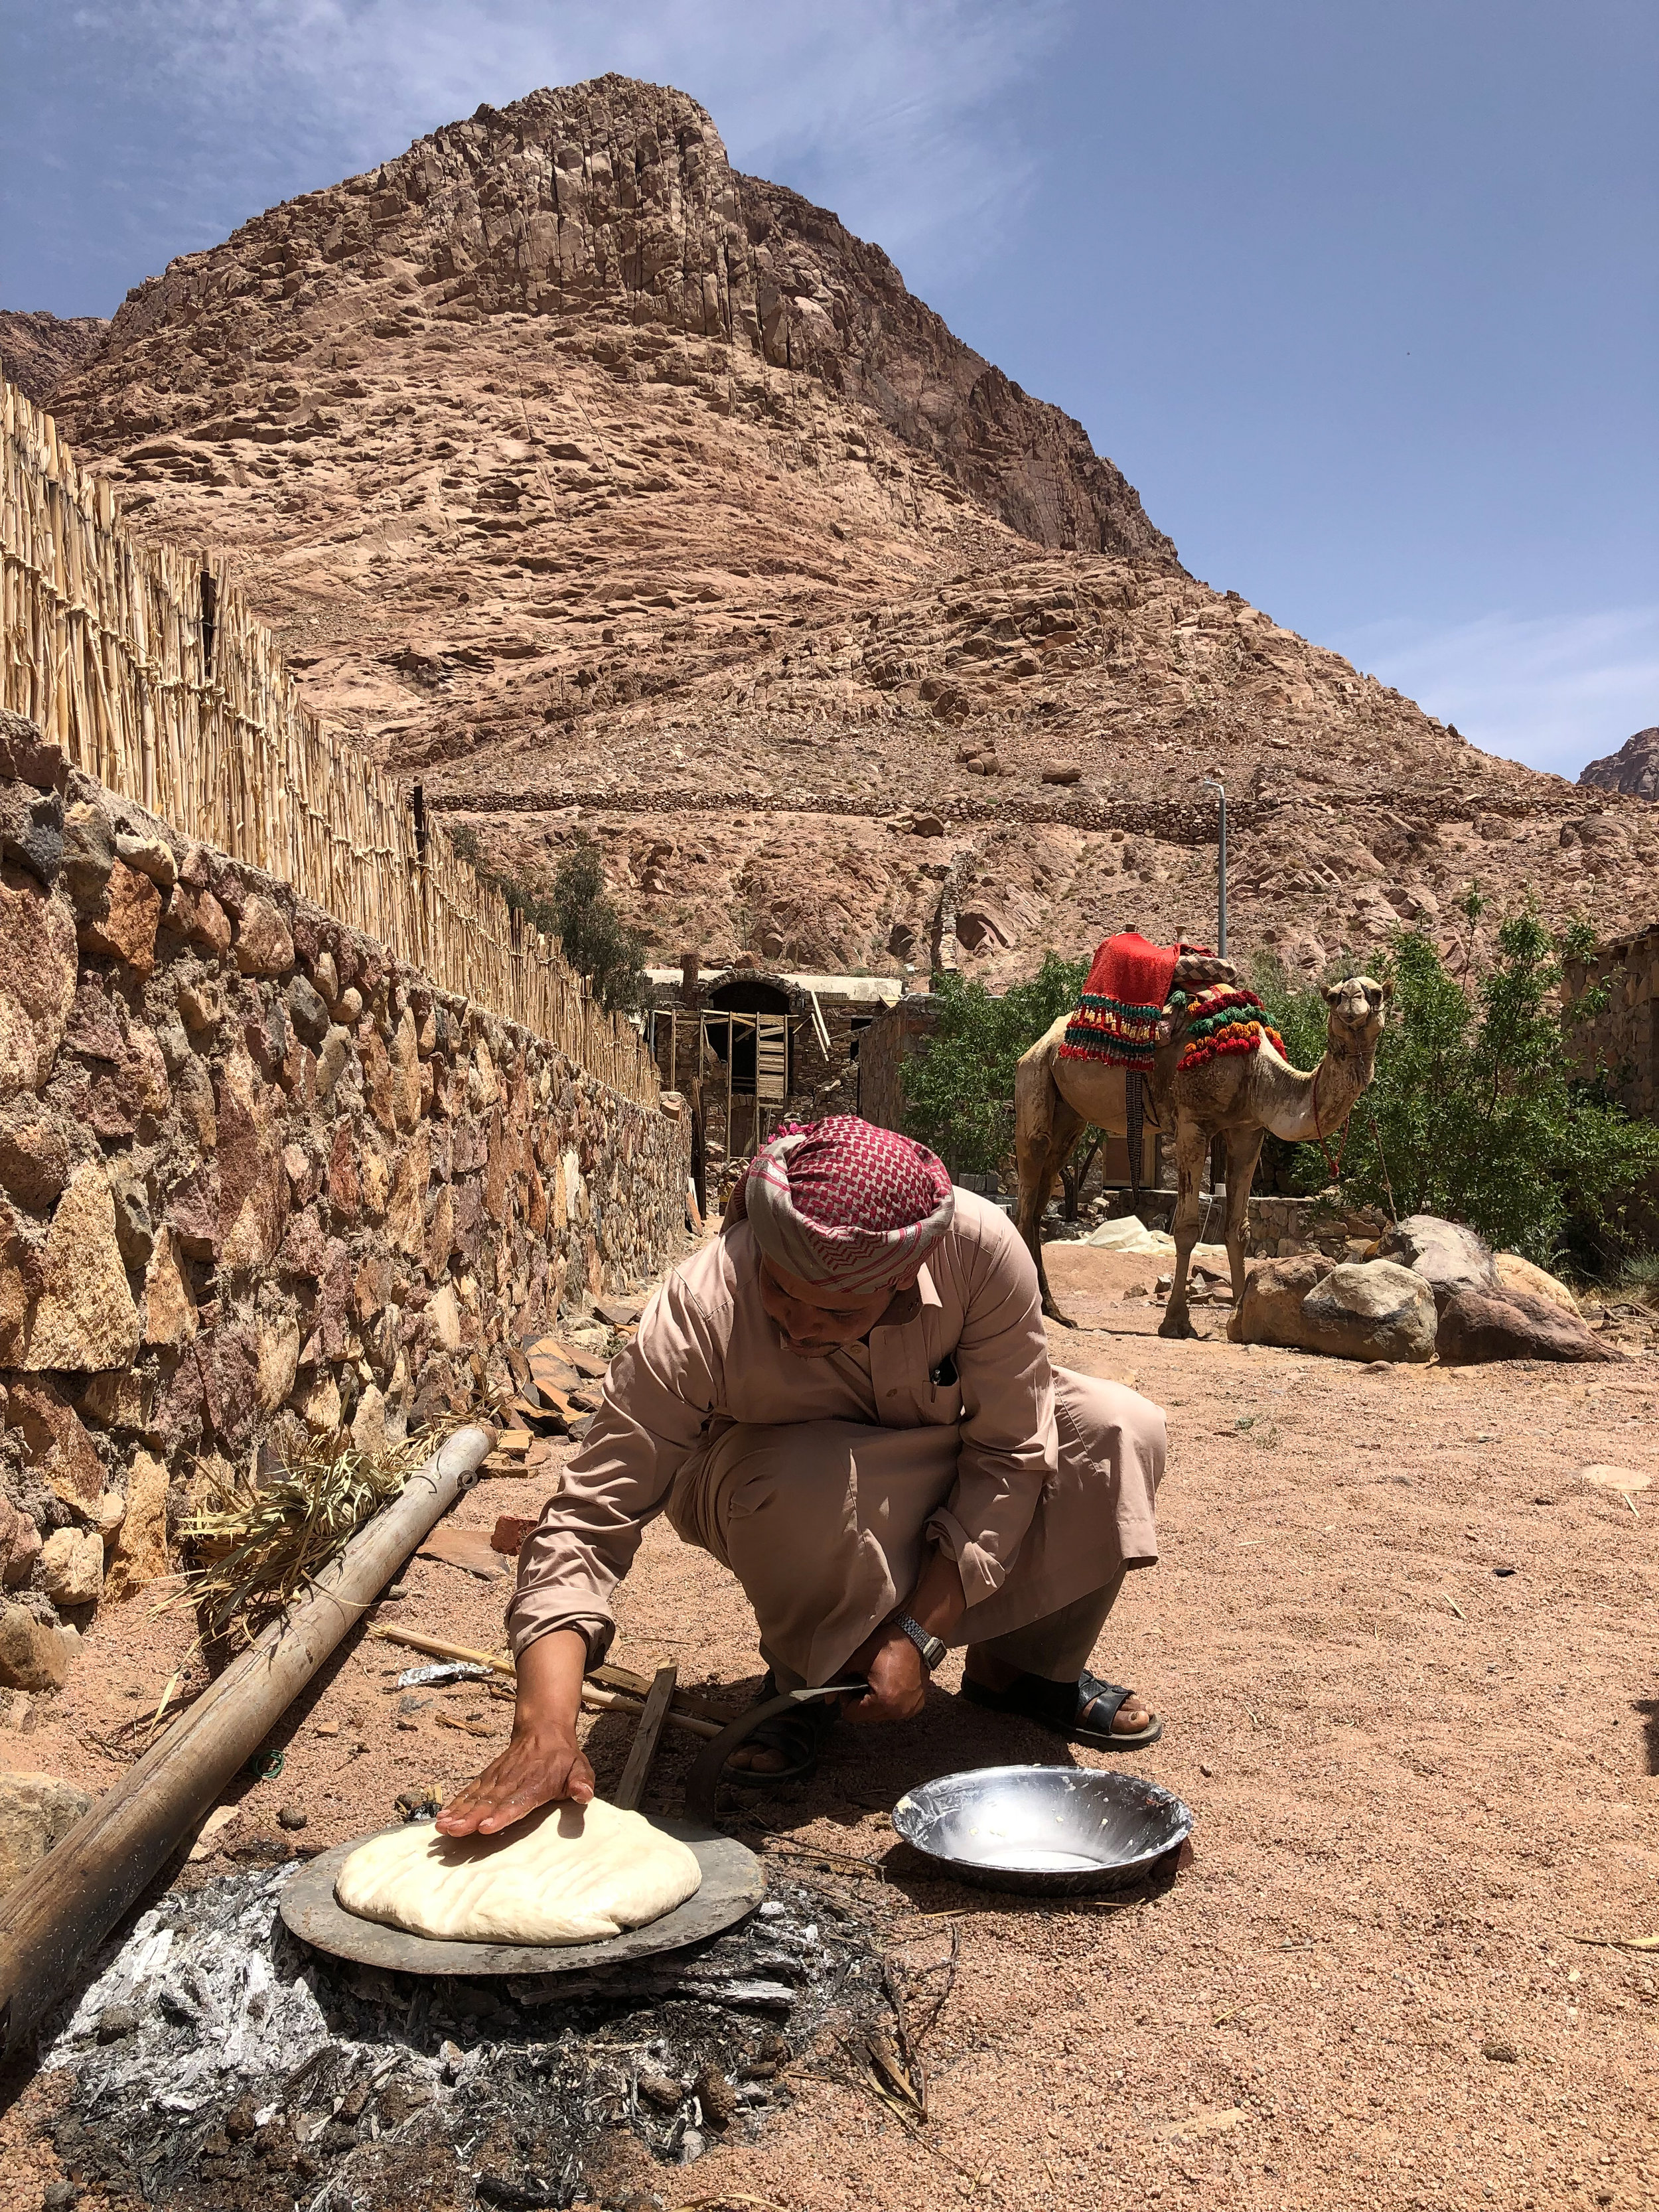 Bedouin making bread, St Catherines City, Sinai - Egypt - Wild Earth Expeditions